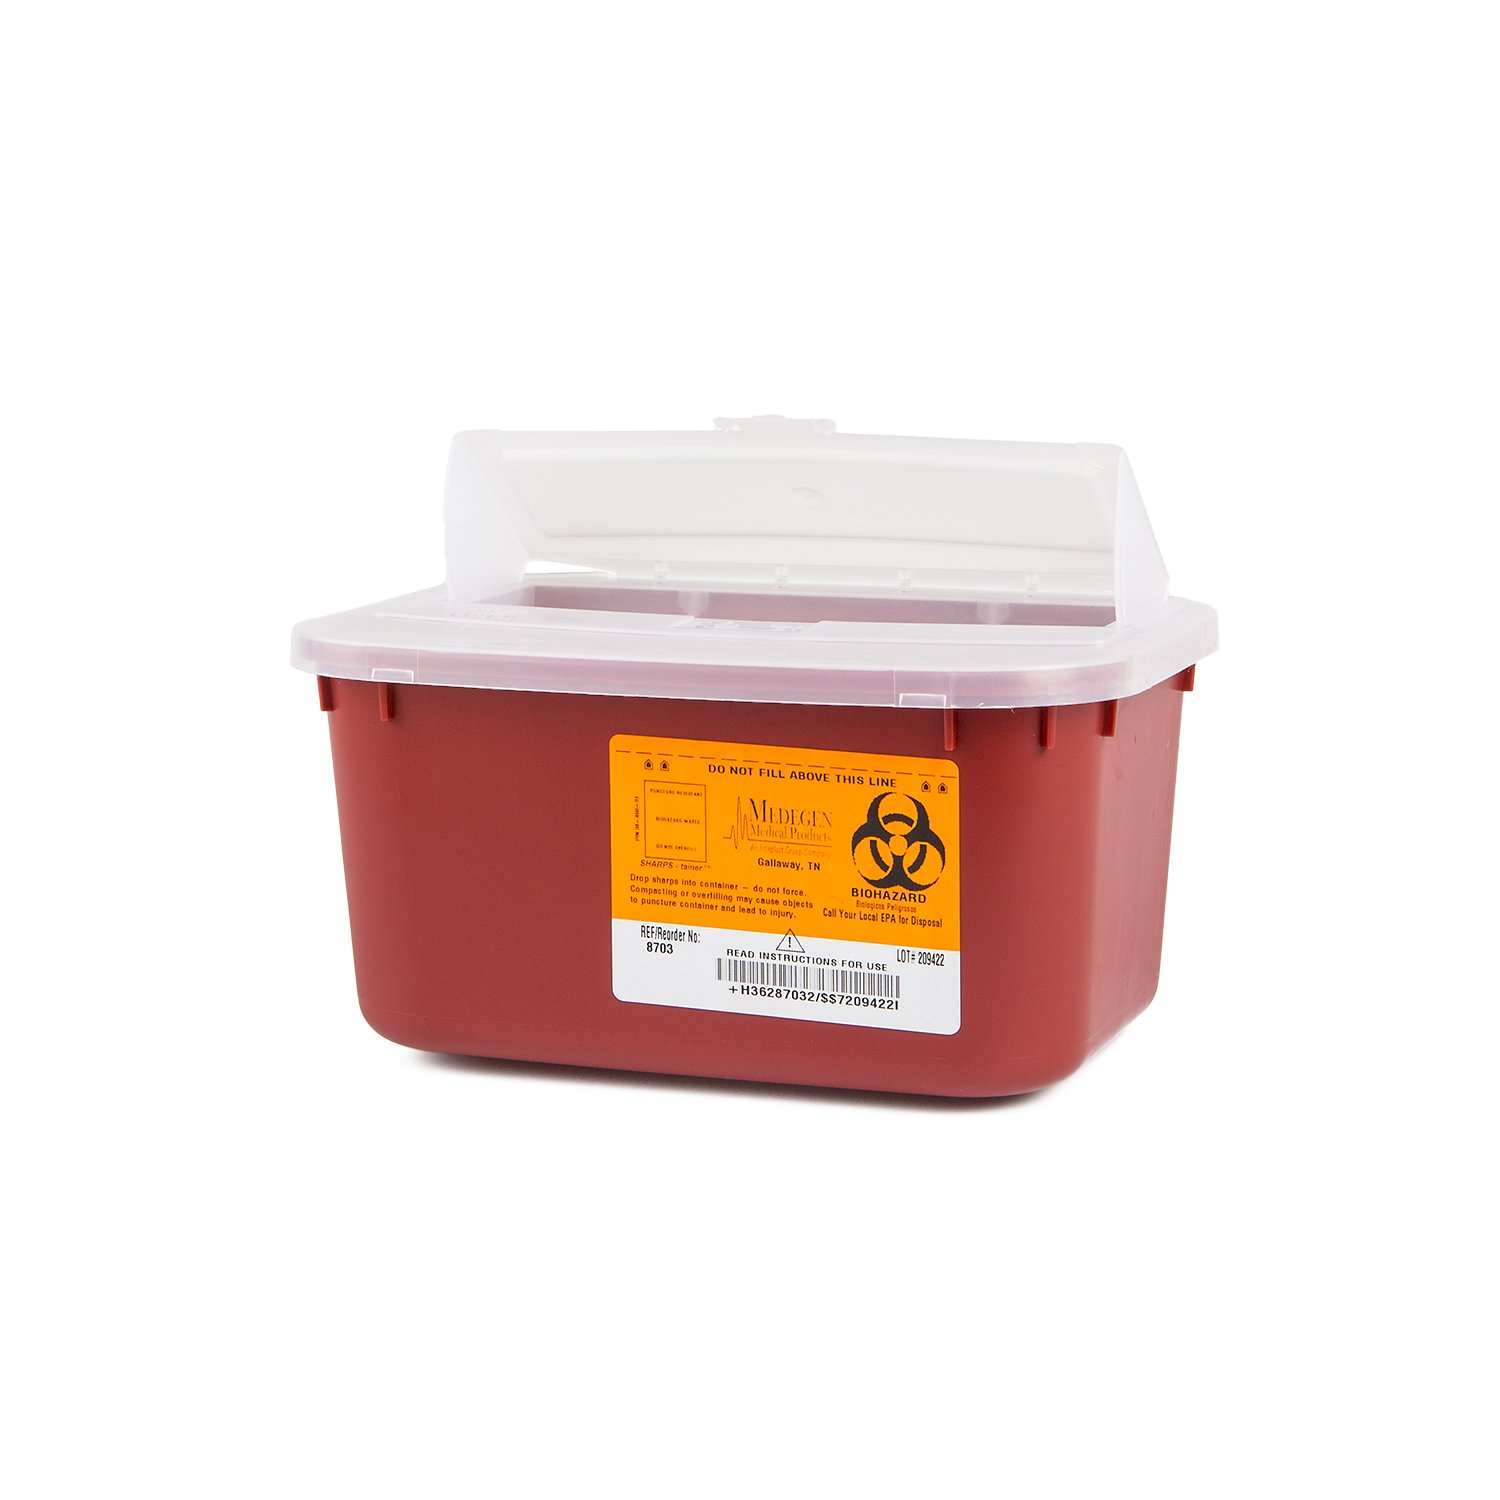 Medegen Medical Products 8703 Stackable Sharps Containers, Polypropylene, 10'' x 7'' x 5'', Medium, Red/Black (Pack of 24)